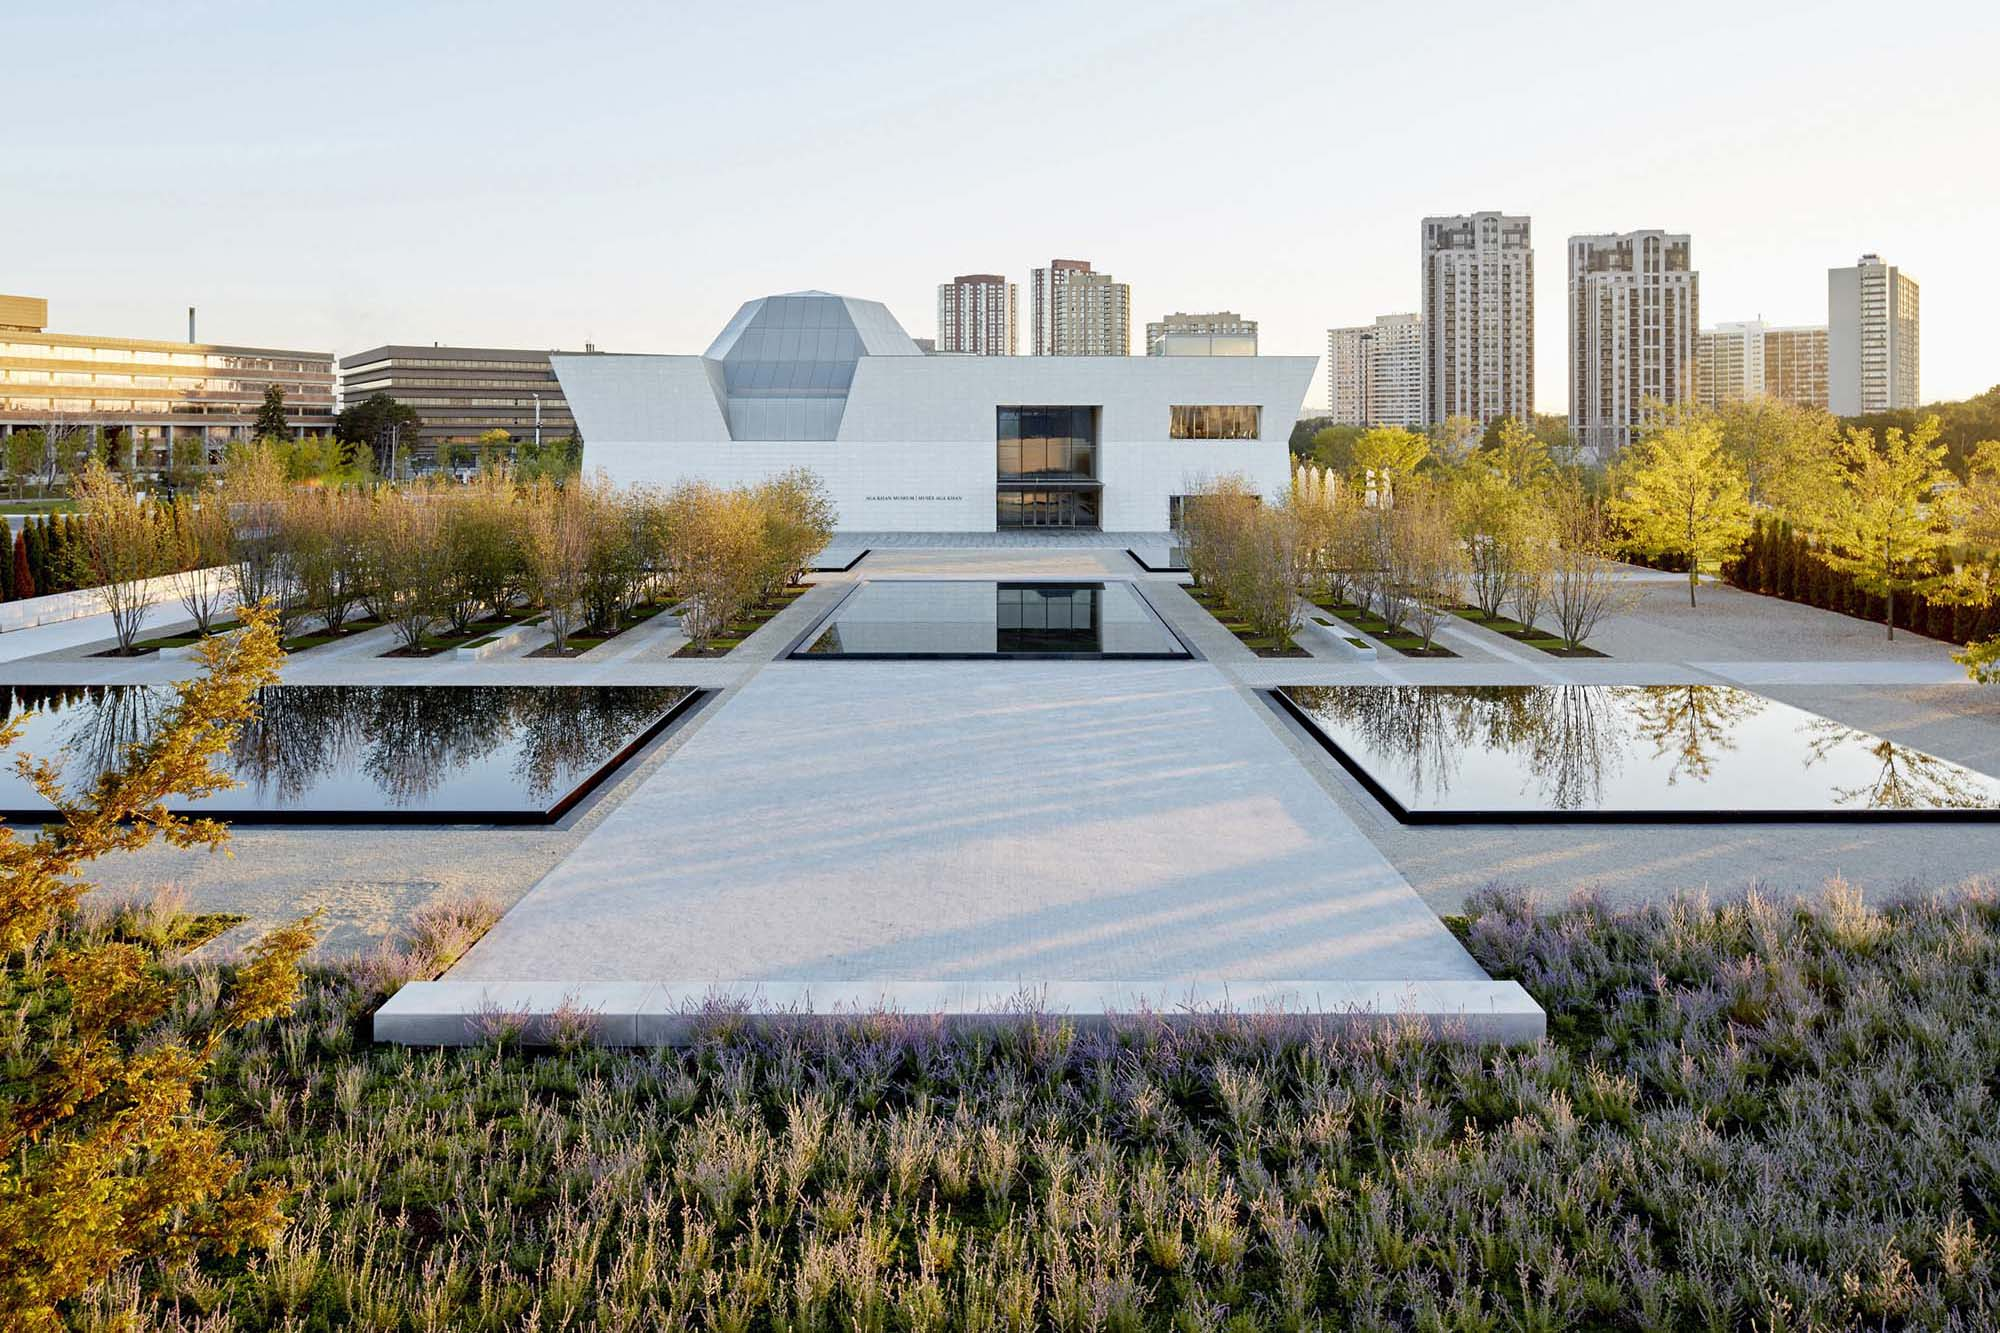 Aga khan park architect magazine vladimir djurovic for Landscape design canada